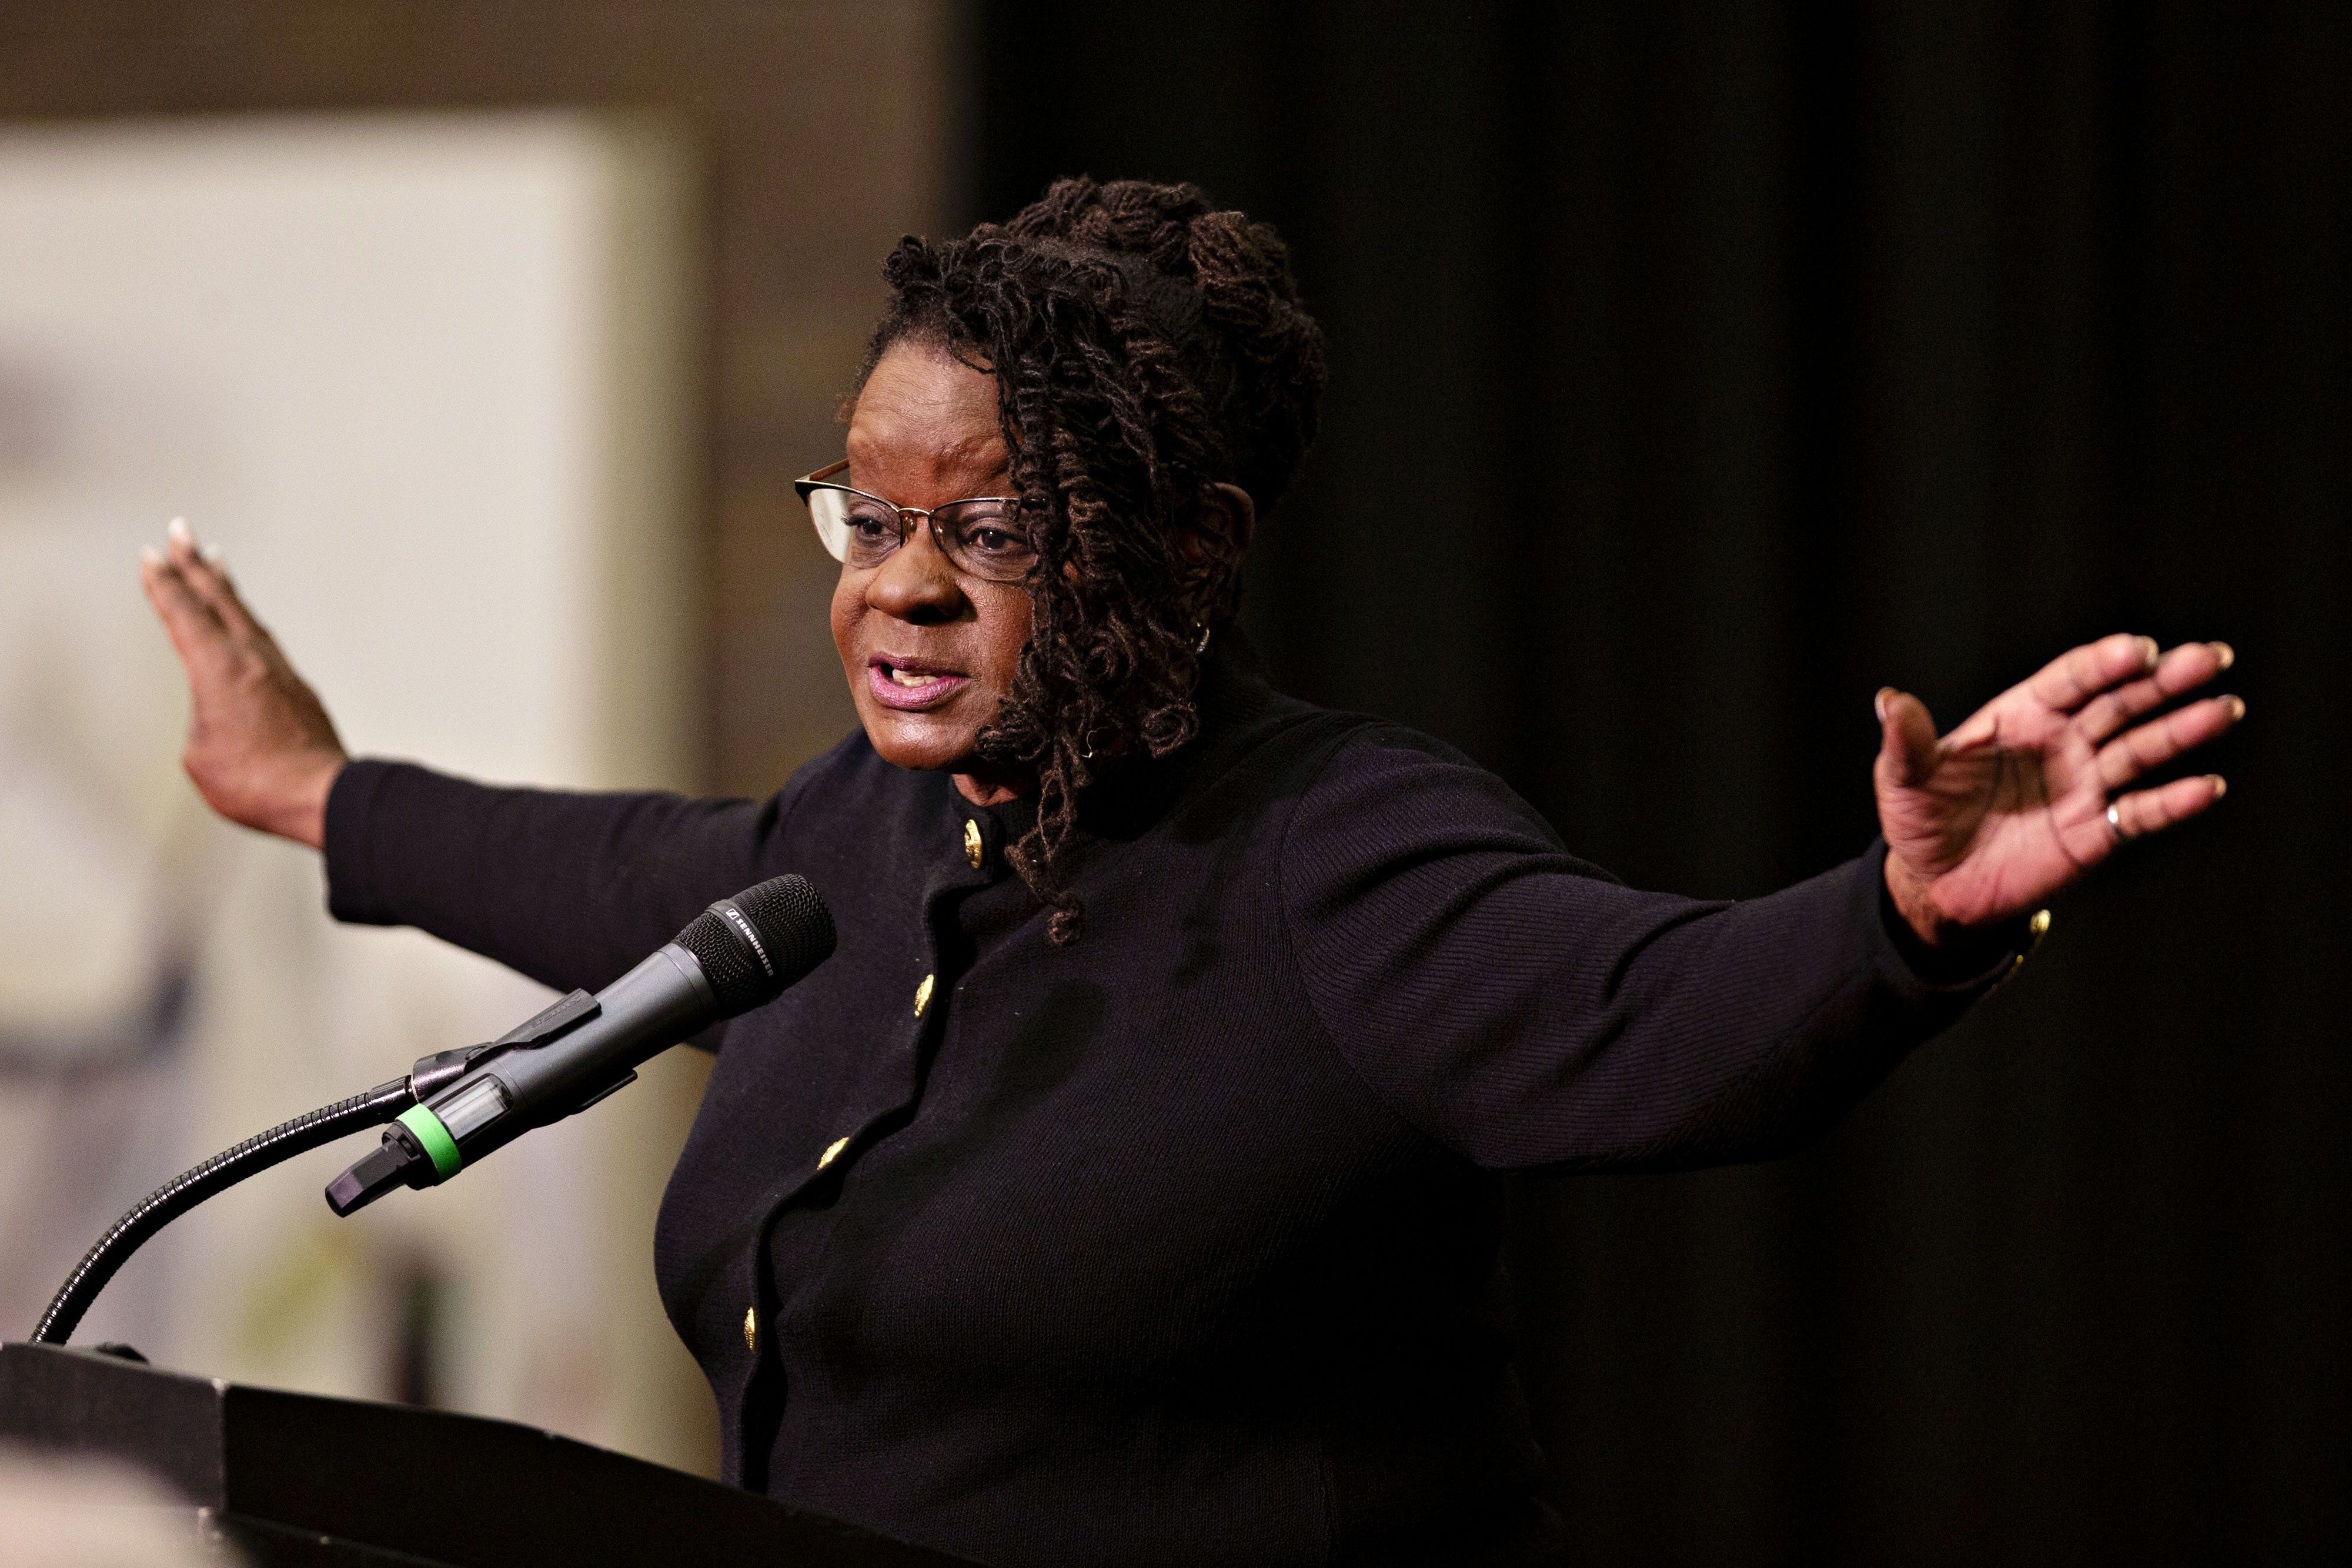 Representative Gwen Moore, a Democrat from Wisconsin, speaks during a campaign rally for Democratic candidates in Milwaukee, Wisconsin, U.S., on Monday, Oct. 22, 2018. Senator Bernie Sanders visited Wisconsin as part of a nine-state swing with to give a boost to progressive candidates ahead of the November 6 midterm elections. Photographer: Daniel Acker/Bloomberg via Getty Images